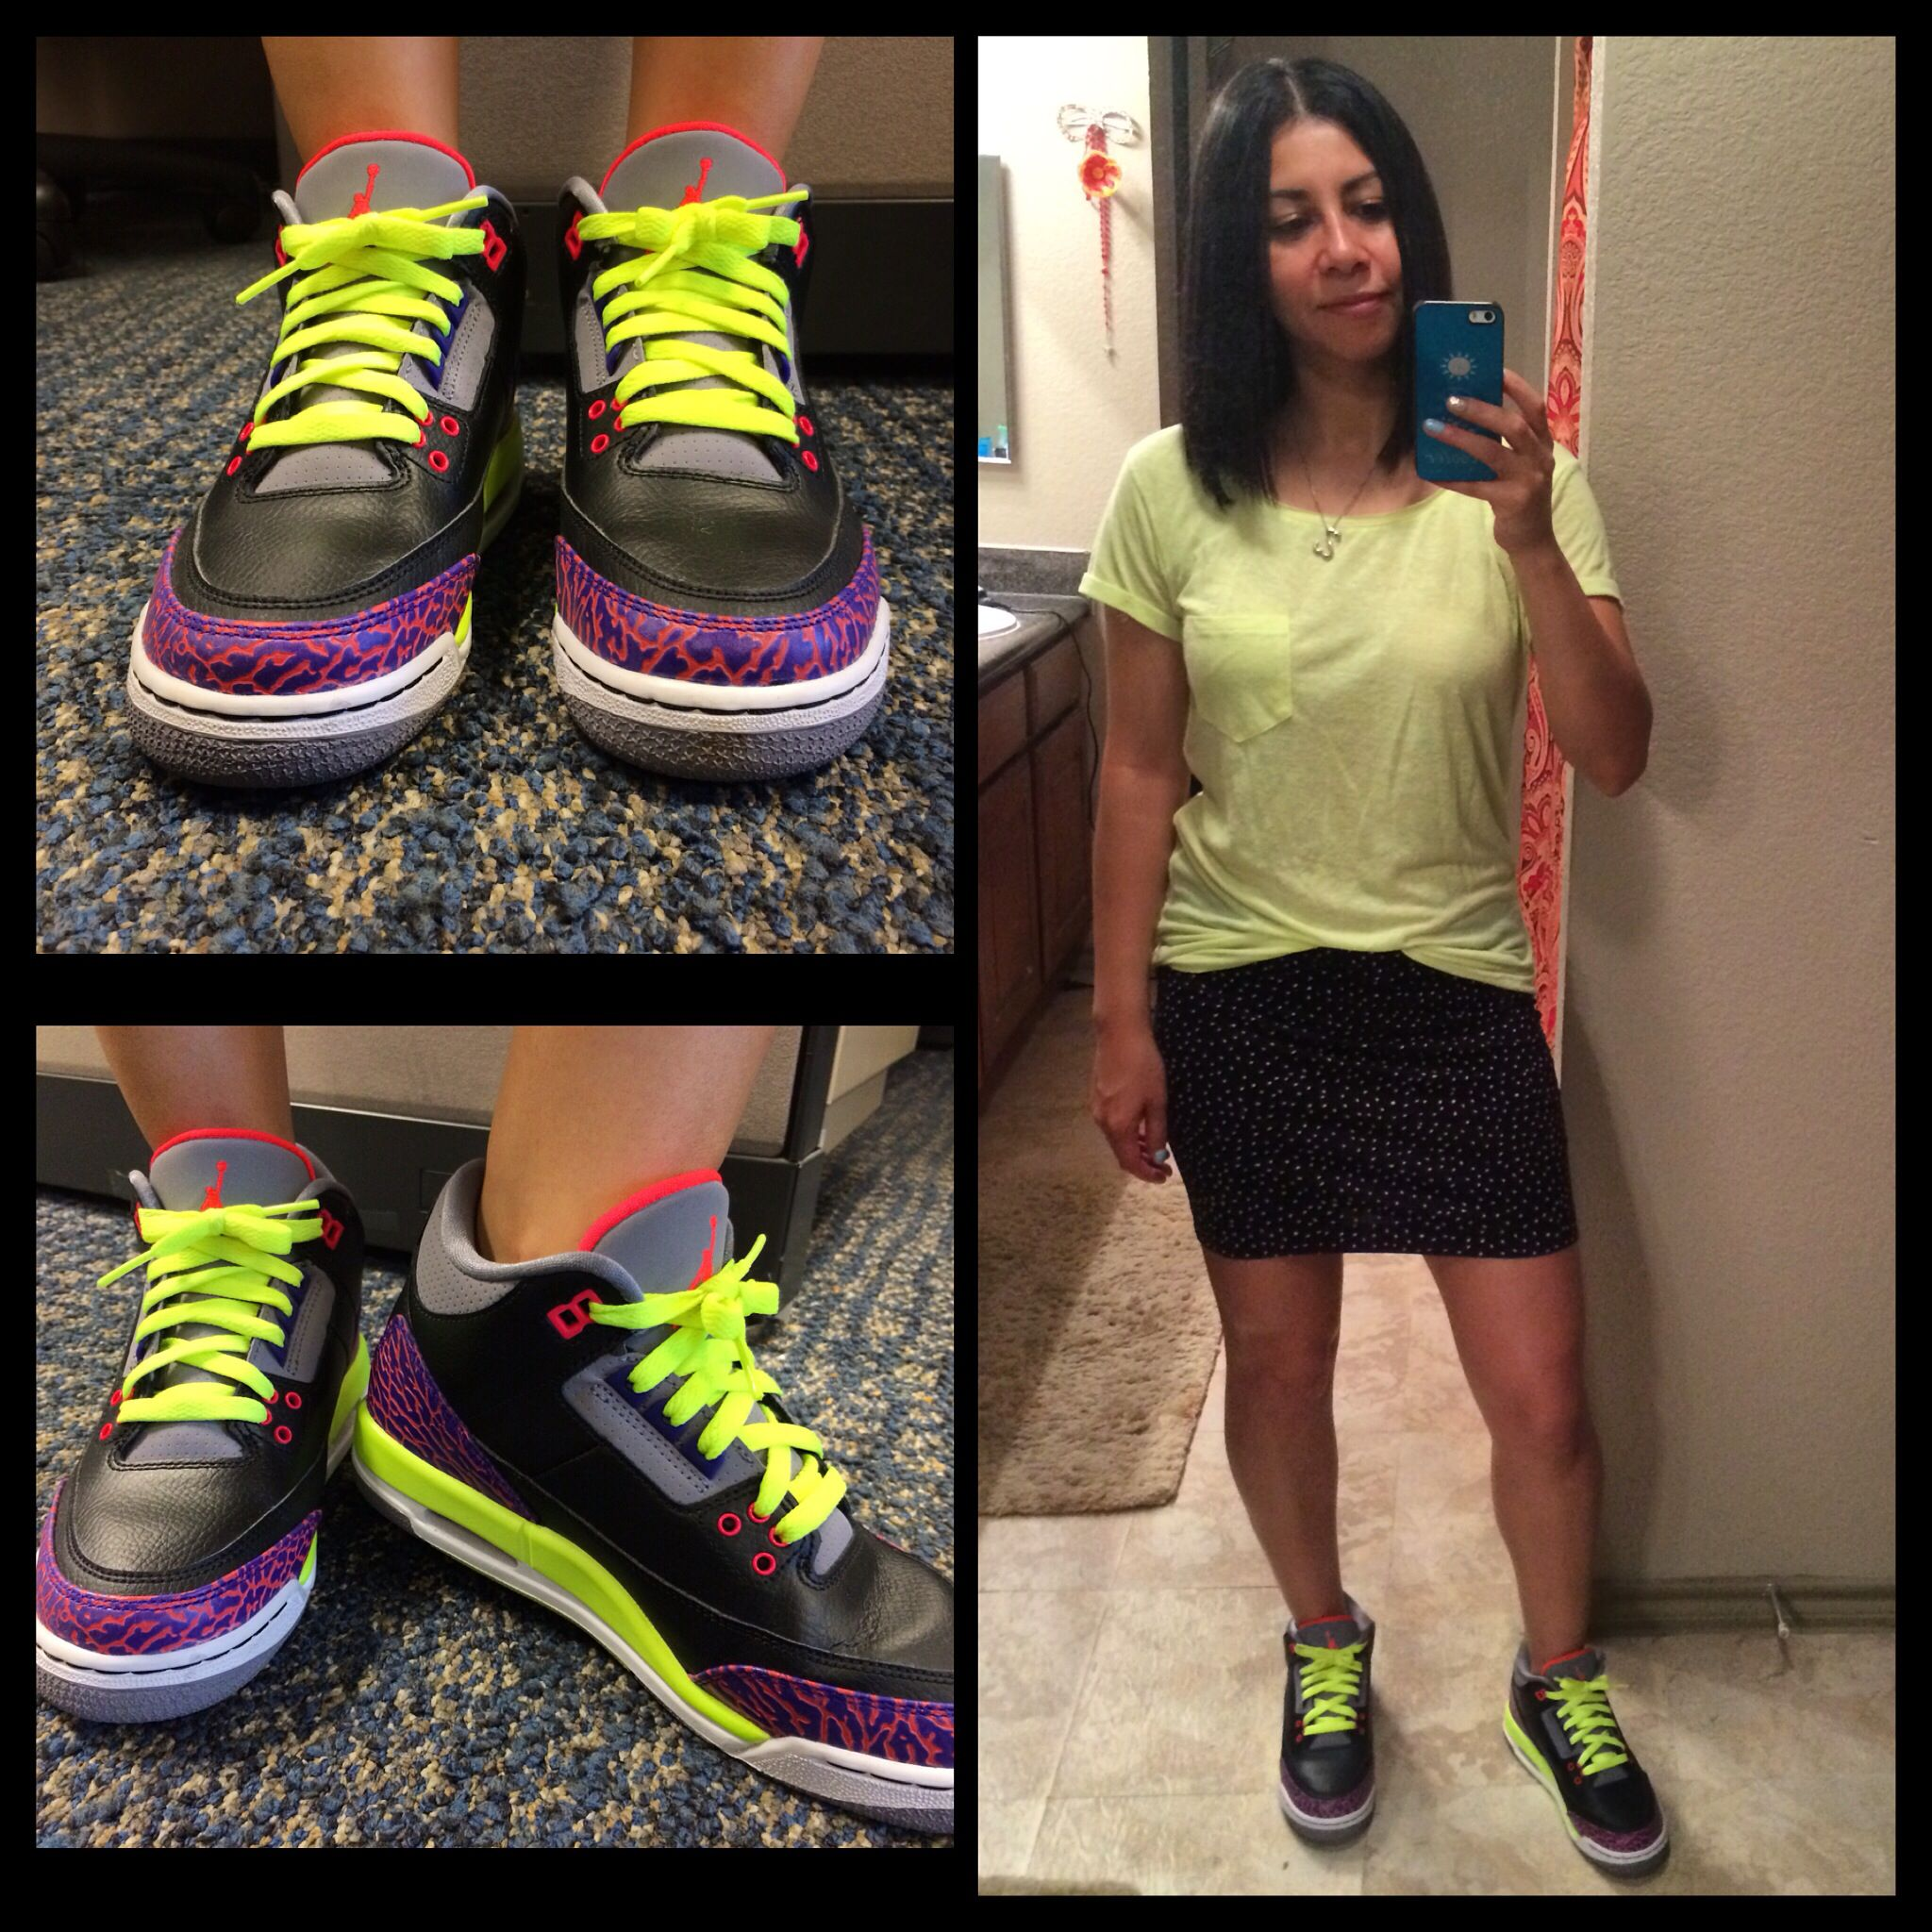 Outfit of the day, jordans 3's black & purple volt and mini skirt